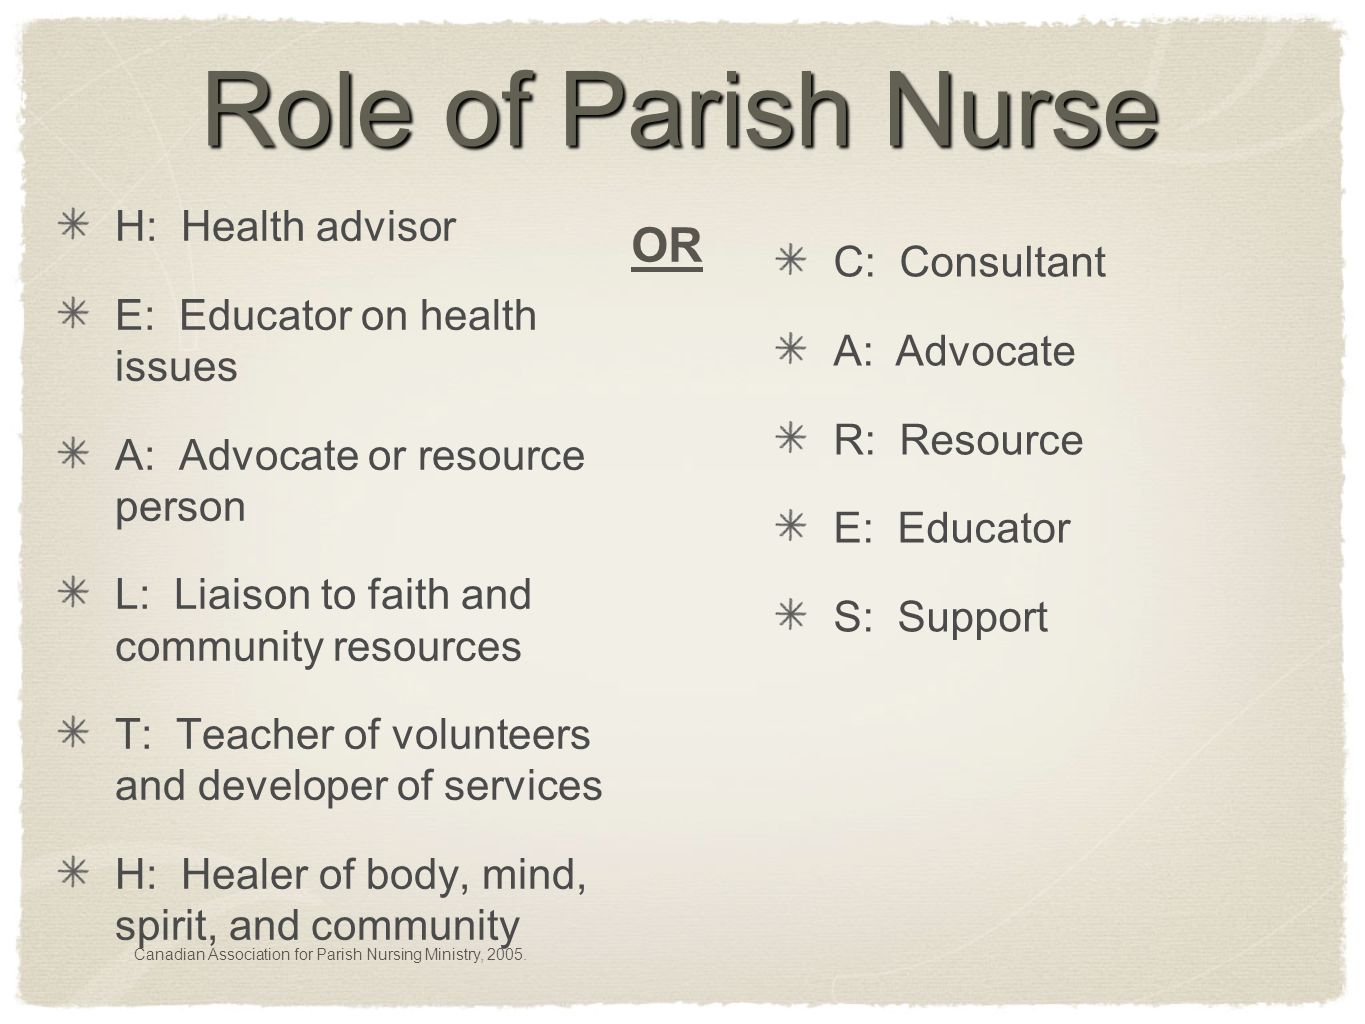 Role of Parish Nurse H: Health advisor E: Educator on health issues A: Advocate or resource person L: Liaison to faith and community resources T: Teacher of volunteers and developer of services H: Healer of body, mind, spirit, and community Canadian Association for Parish Nursing Ministry, 2005.